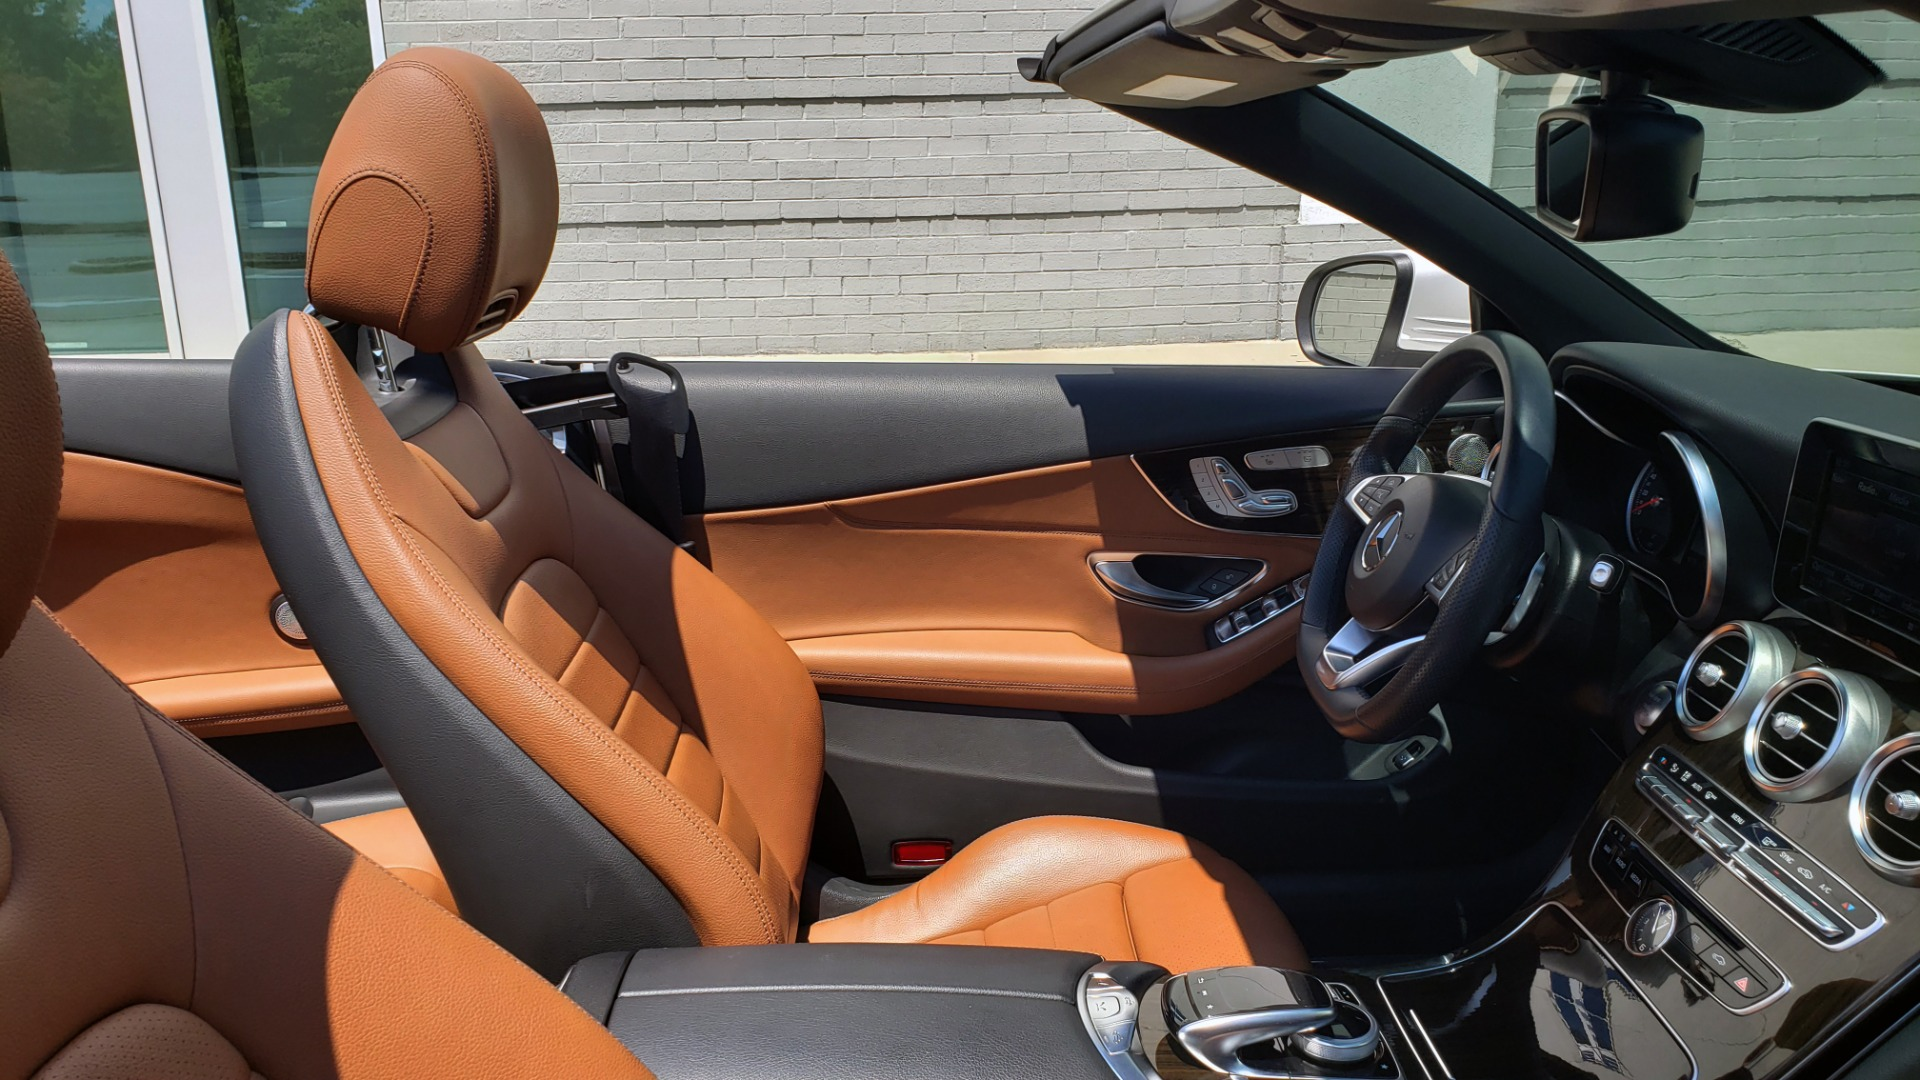 Used 2018 Mercedes-Benz C-CLASS C 300 CABRIOLET PREMIUM / AWD / BURMESTER SND / APPLE / REARVIEW for sale $44,995 at Formula Imports in Charlotte NC 28227 22